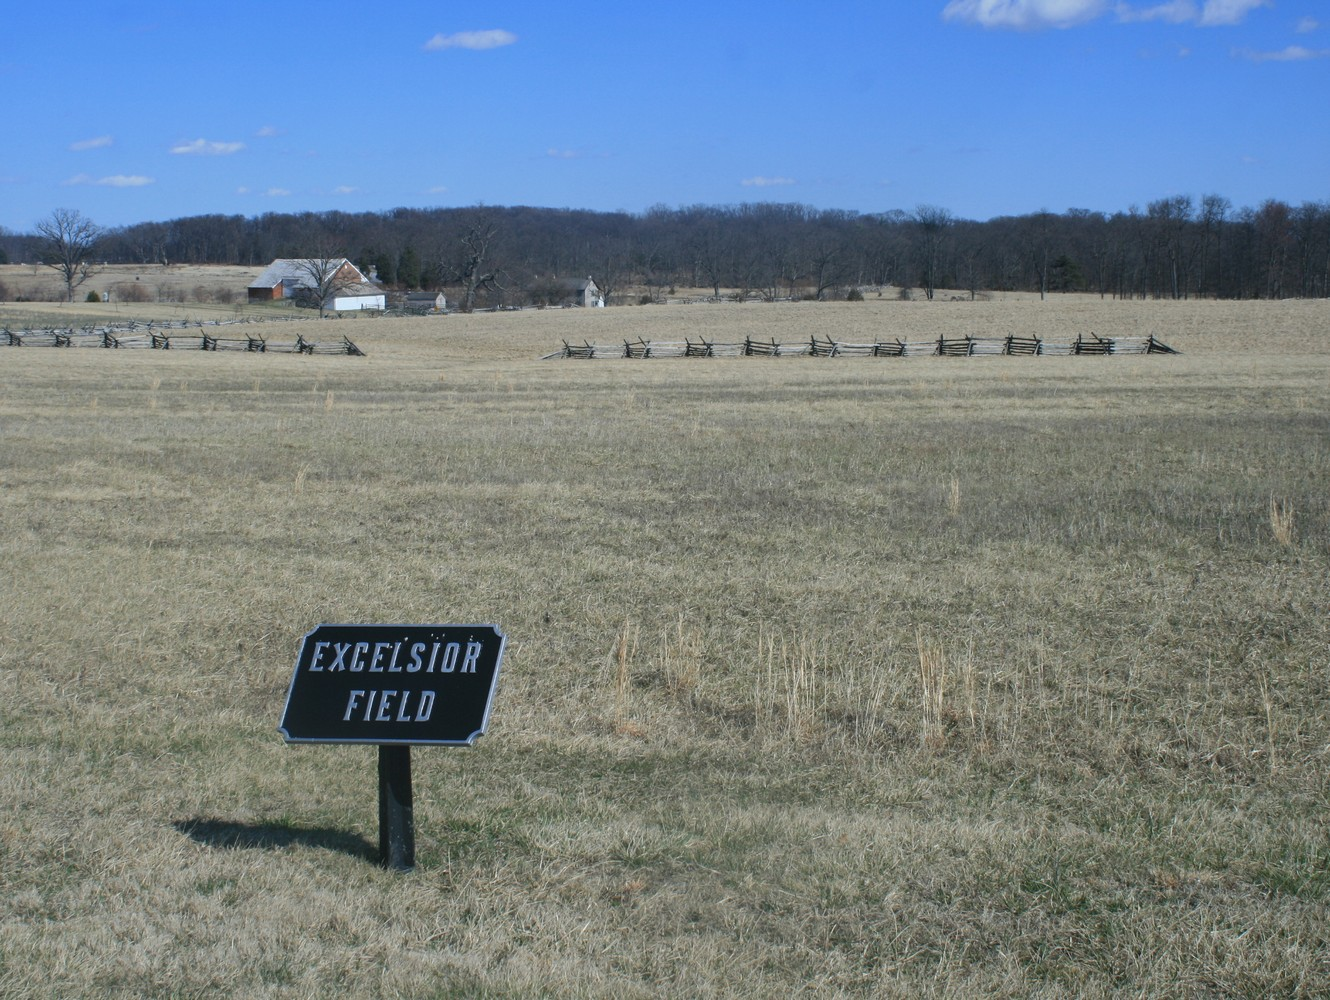 List of monuments of the Gettysburg Battlefield